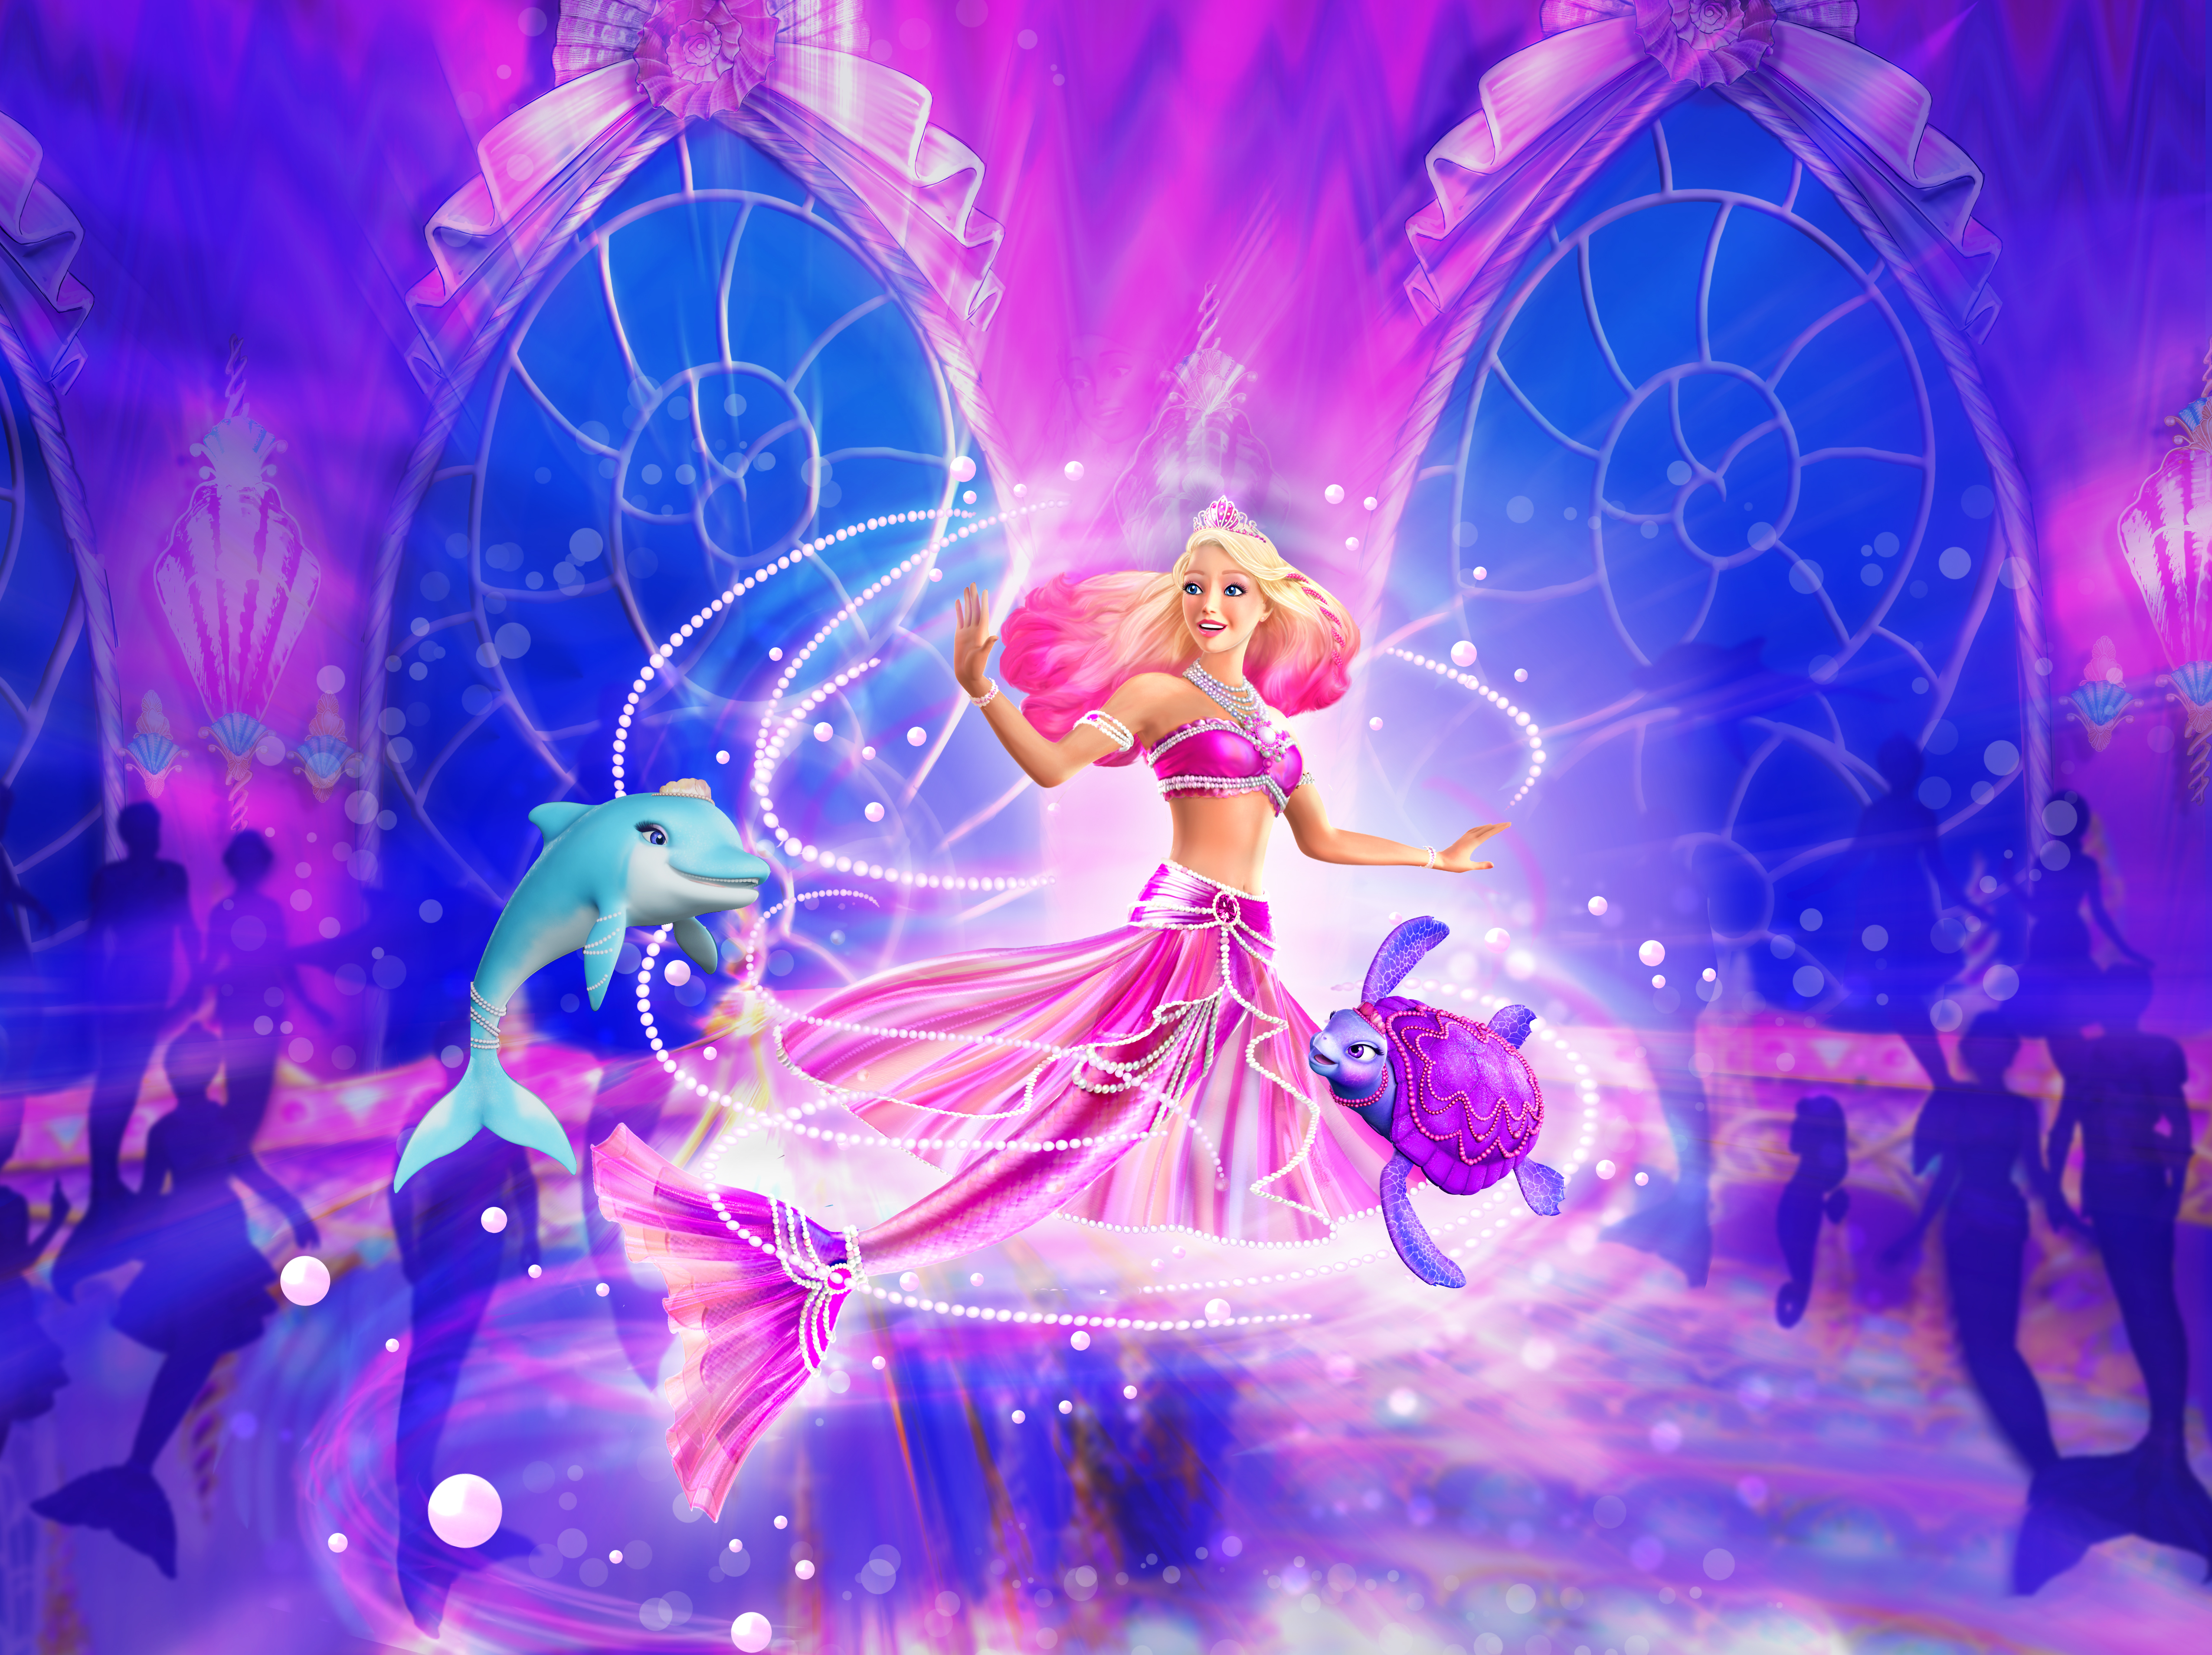 Barbie The Pearl Princess Wallpapers High Quality Download Free